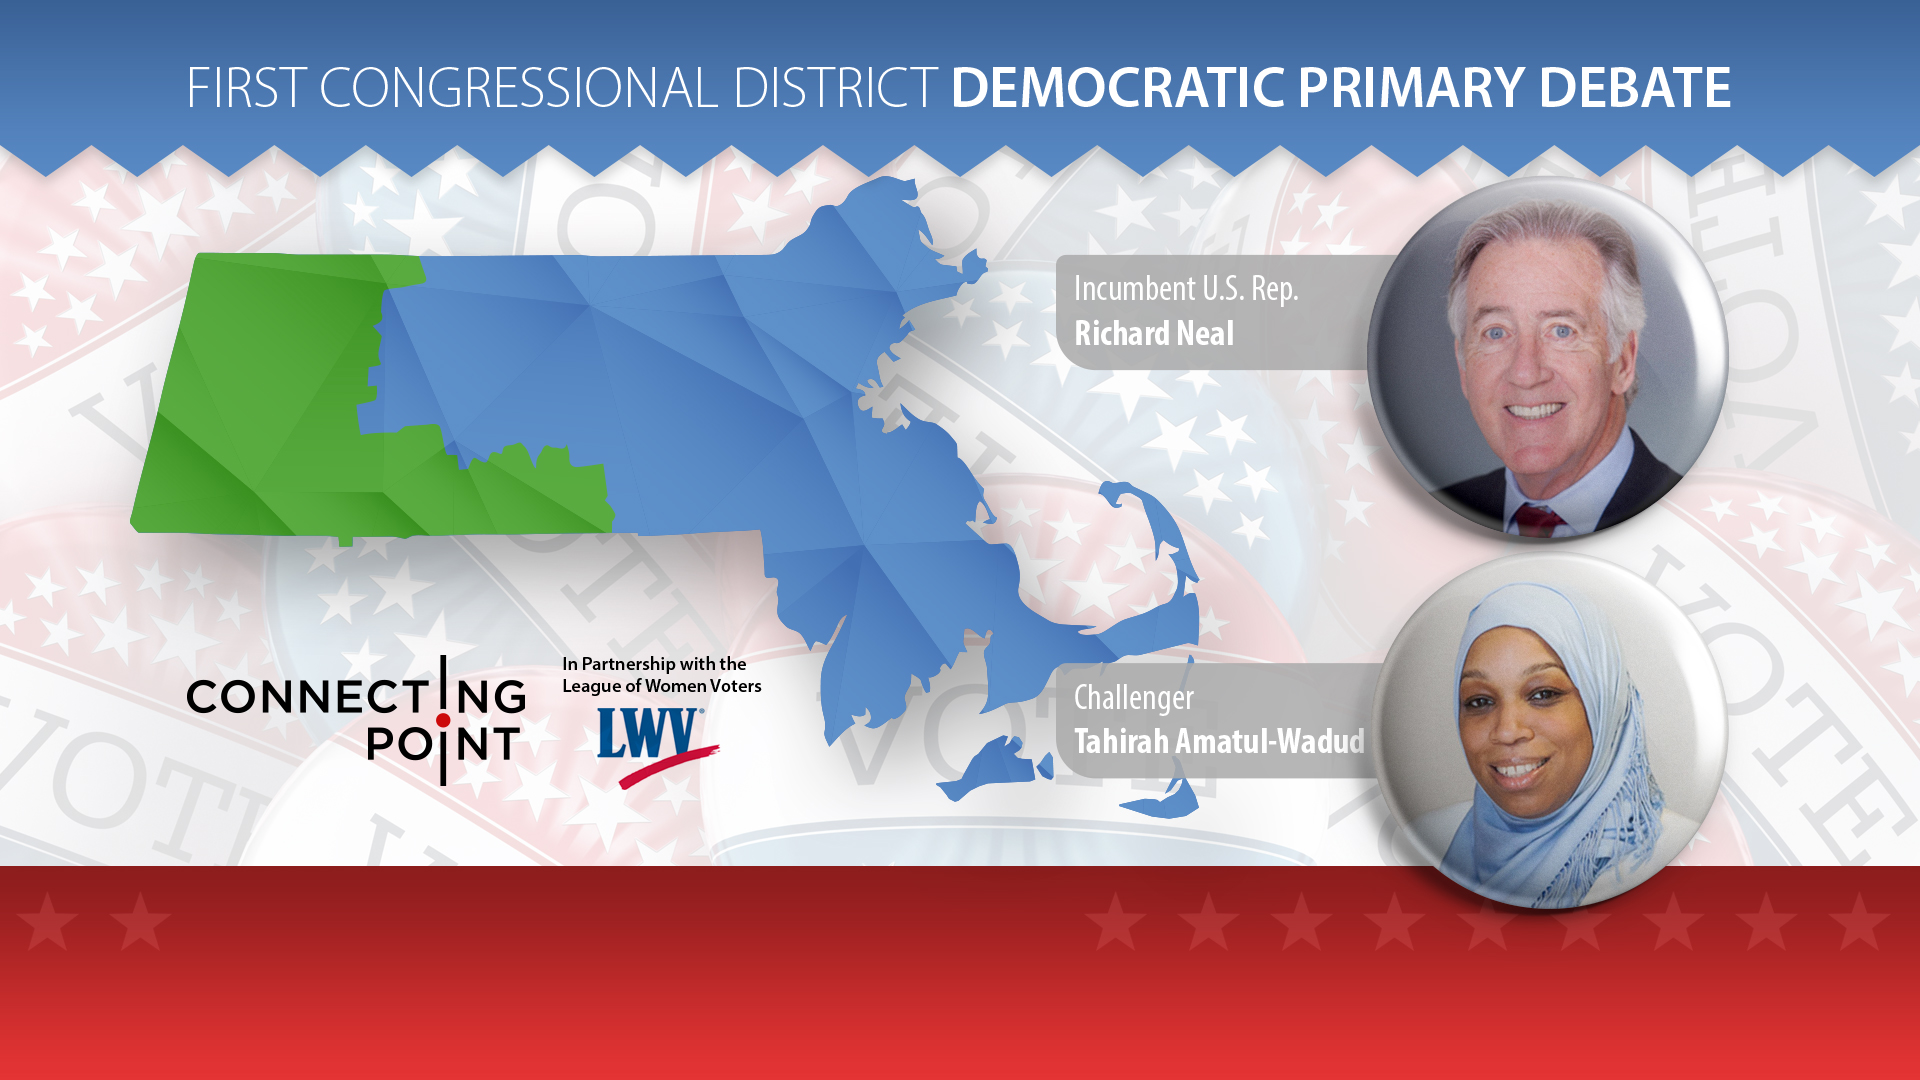 Mass. 1st Congressional District Democratic Primary Debate